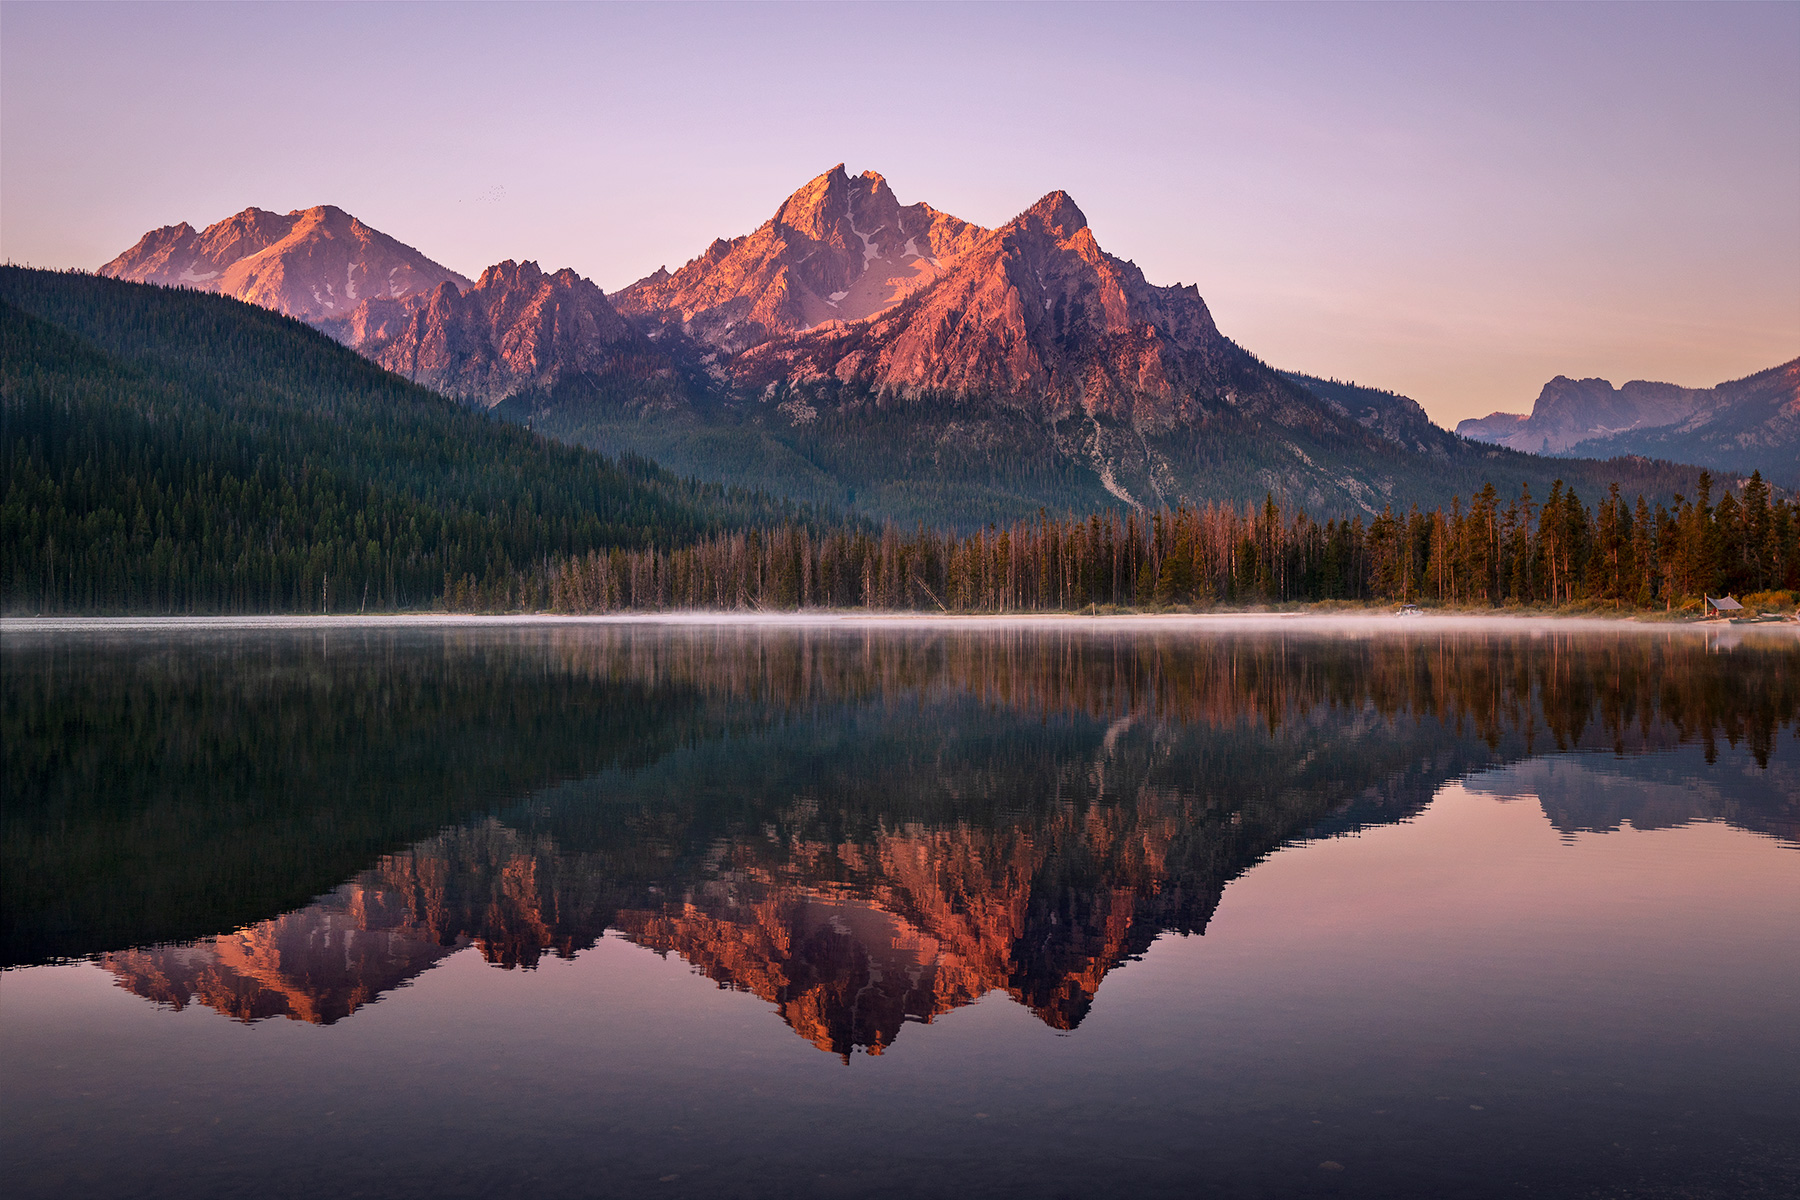 Sunrise on the Sawtooth Range the day before the total solar eclipse at Stanley Lake, Idaho © Autumn Schrock